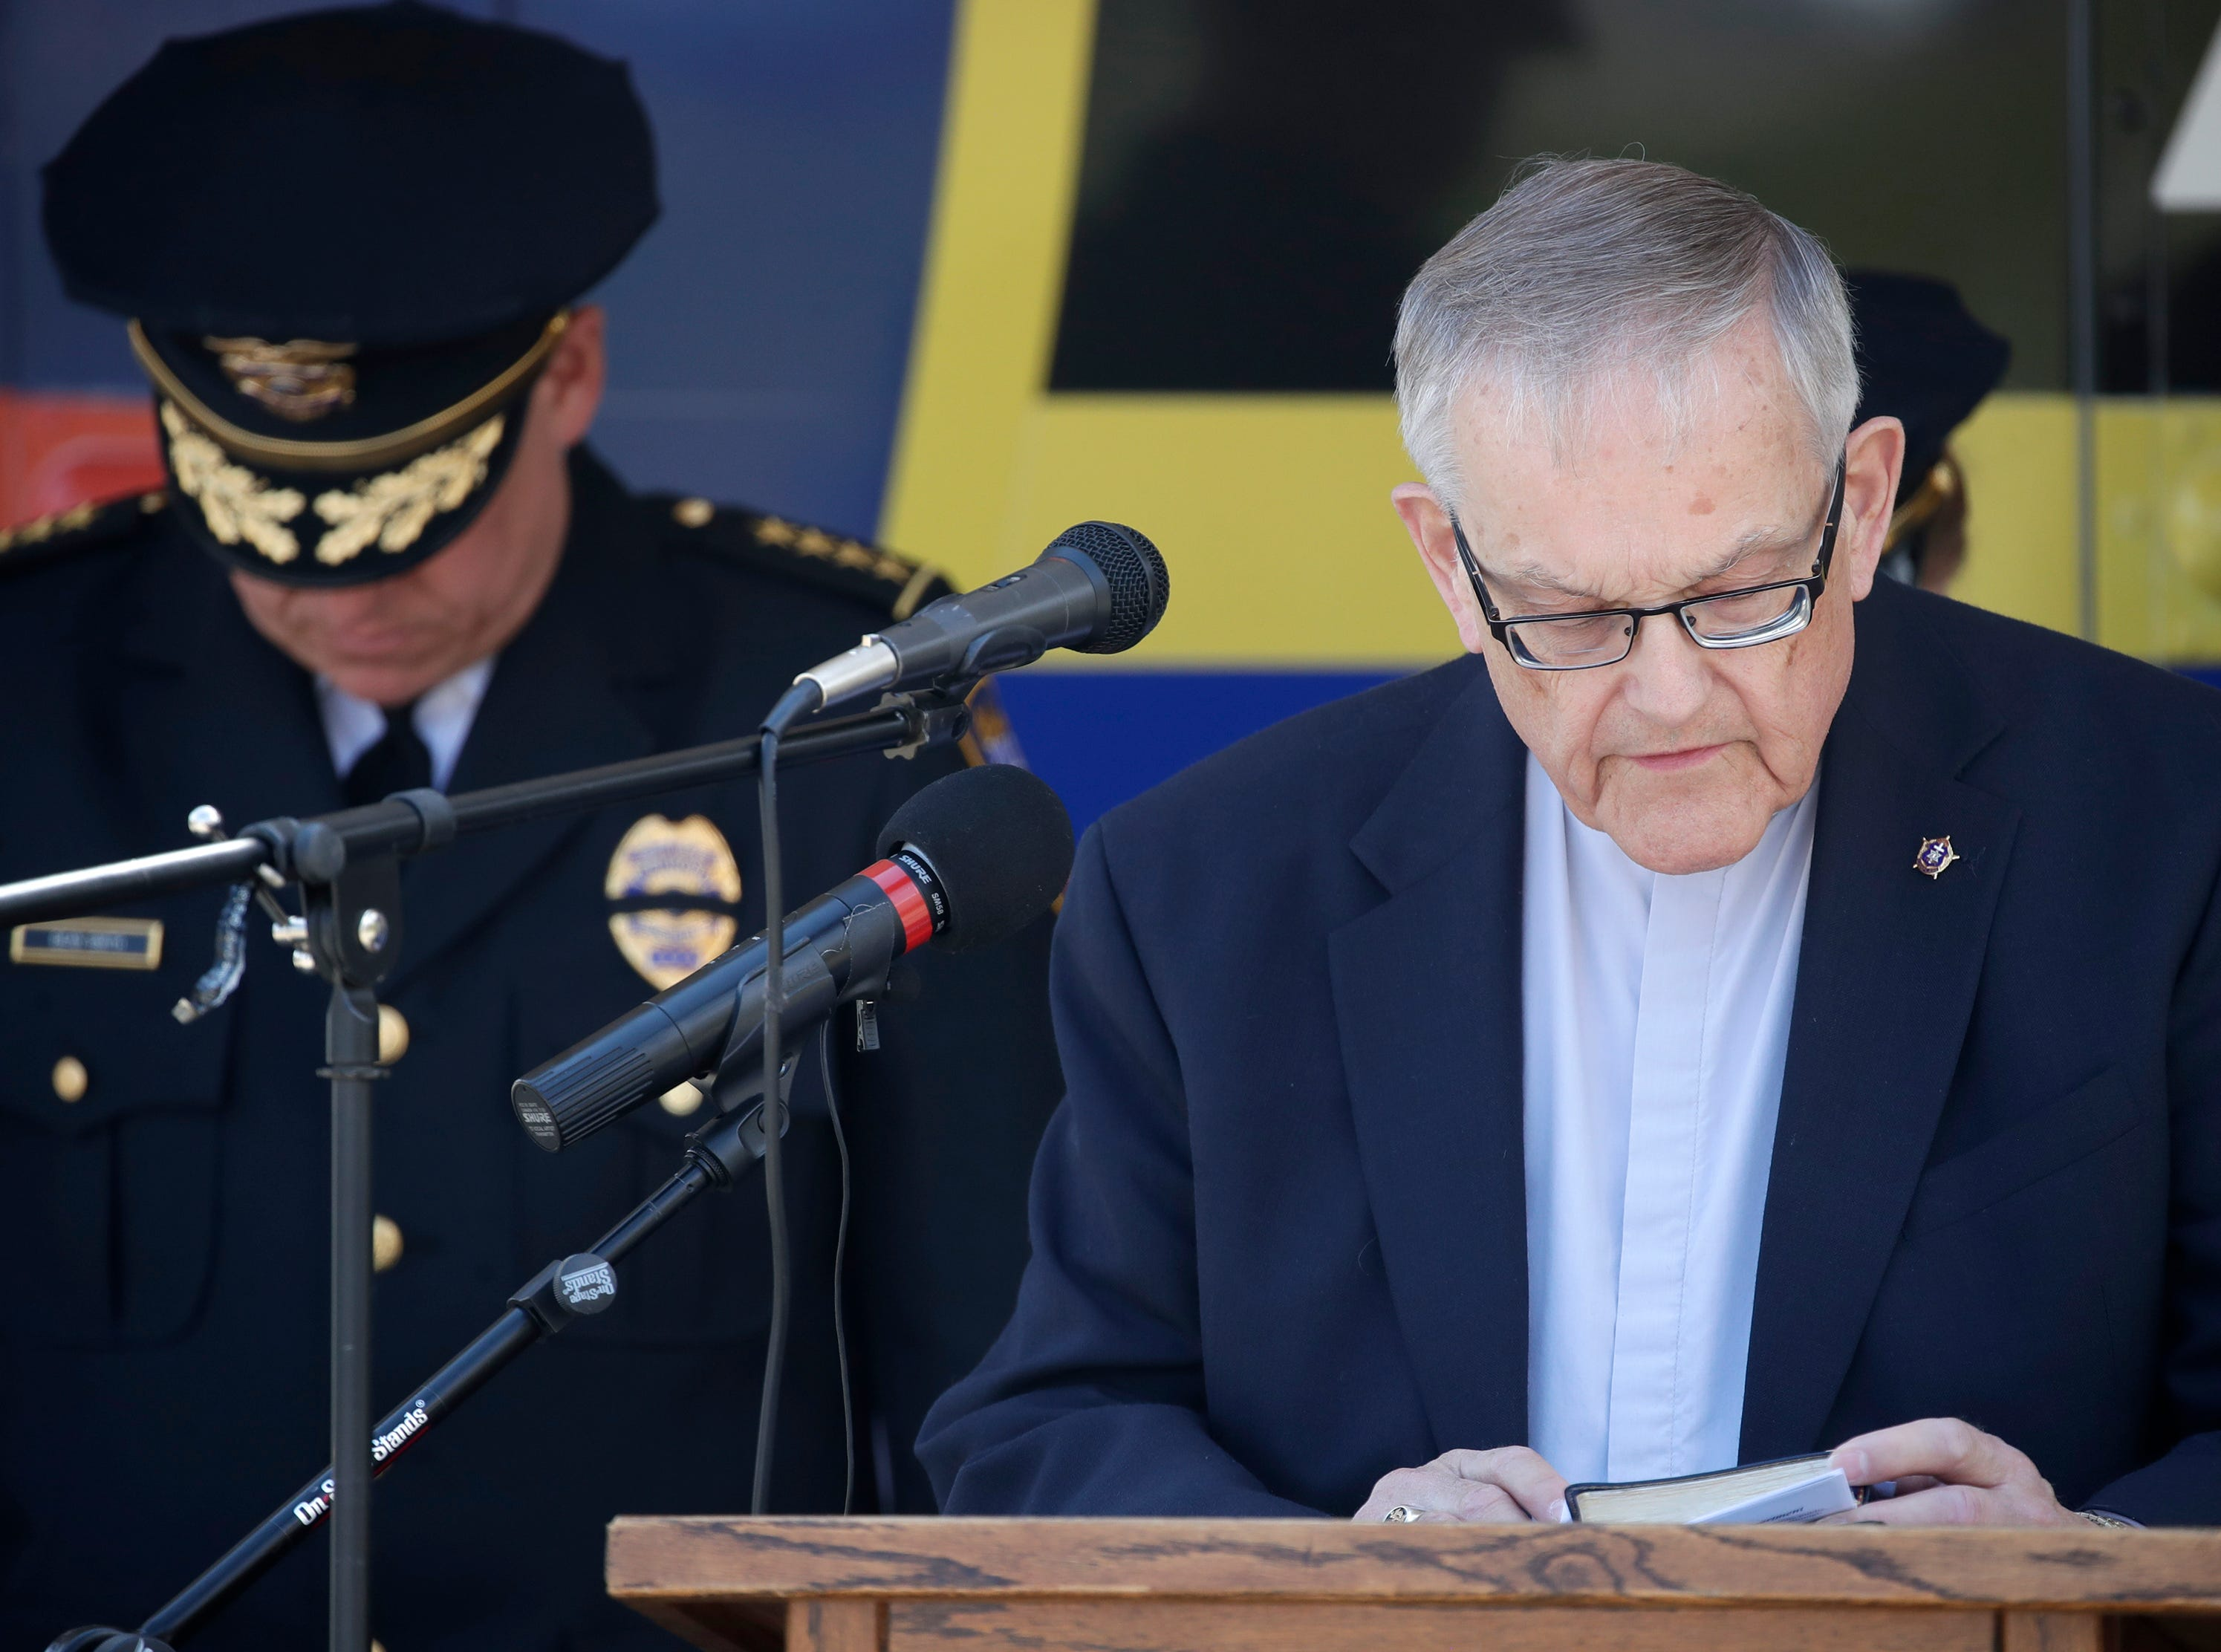 Pastor Ed Smith gives the invocation during the Oshkosh Police Department's Law Enforcement Memorial Ceremony Wednesday, May 15, 2019, at the Oshkosh Police Department in Oshkosh, Wis. Danny Damiani/USA TODAY NETWORK-Wisconsin